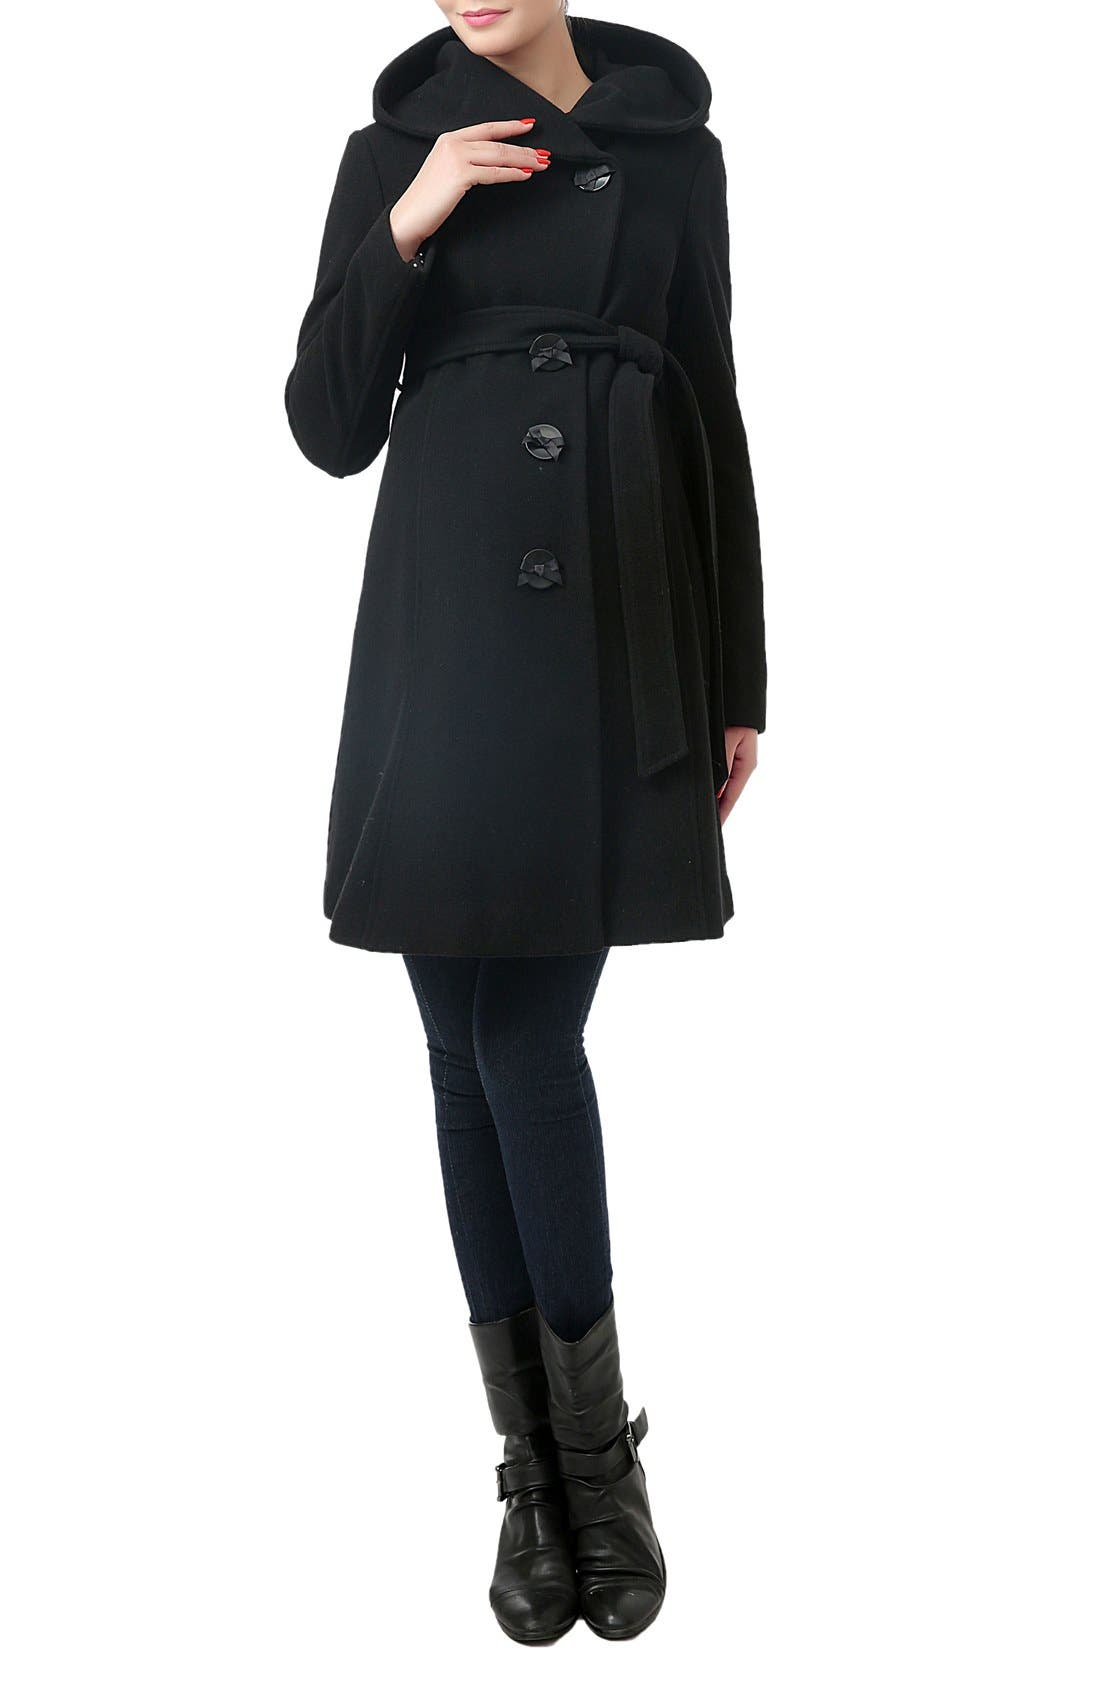 KIMI AND KAI,                             'Lora' Wool Blend Maternity Coat,                             Alternate thumbnail 3, color,                             BLACK